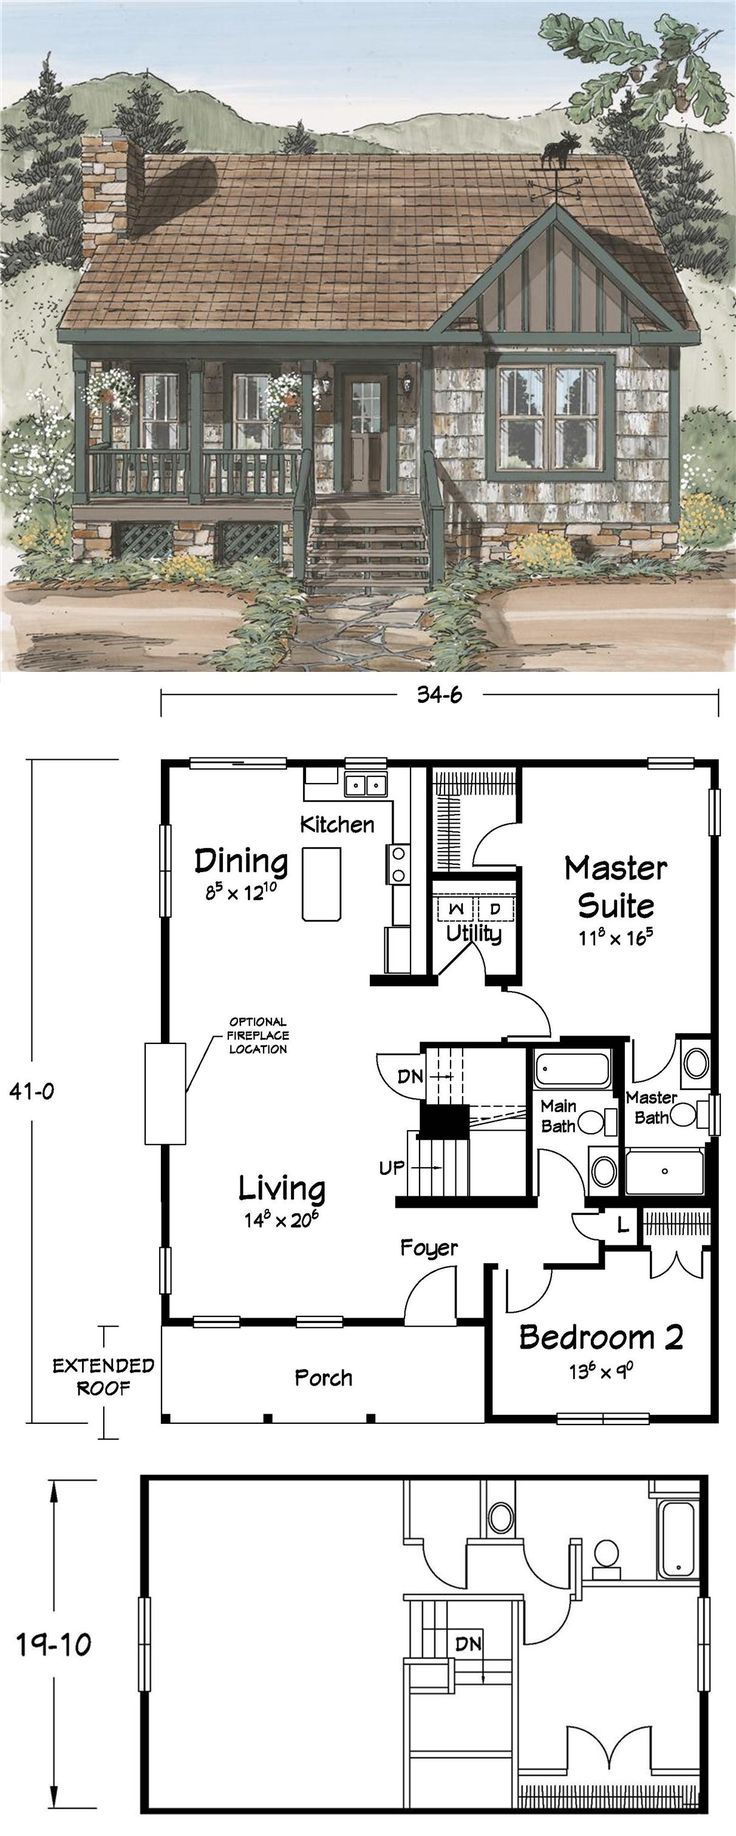 Cute floor plans tiny homes pinterest cabin small for 2 bedroom tiny house